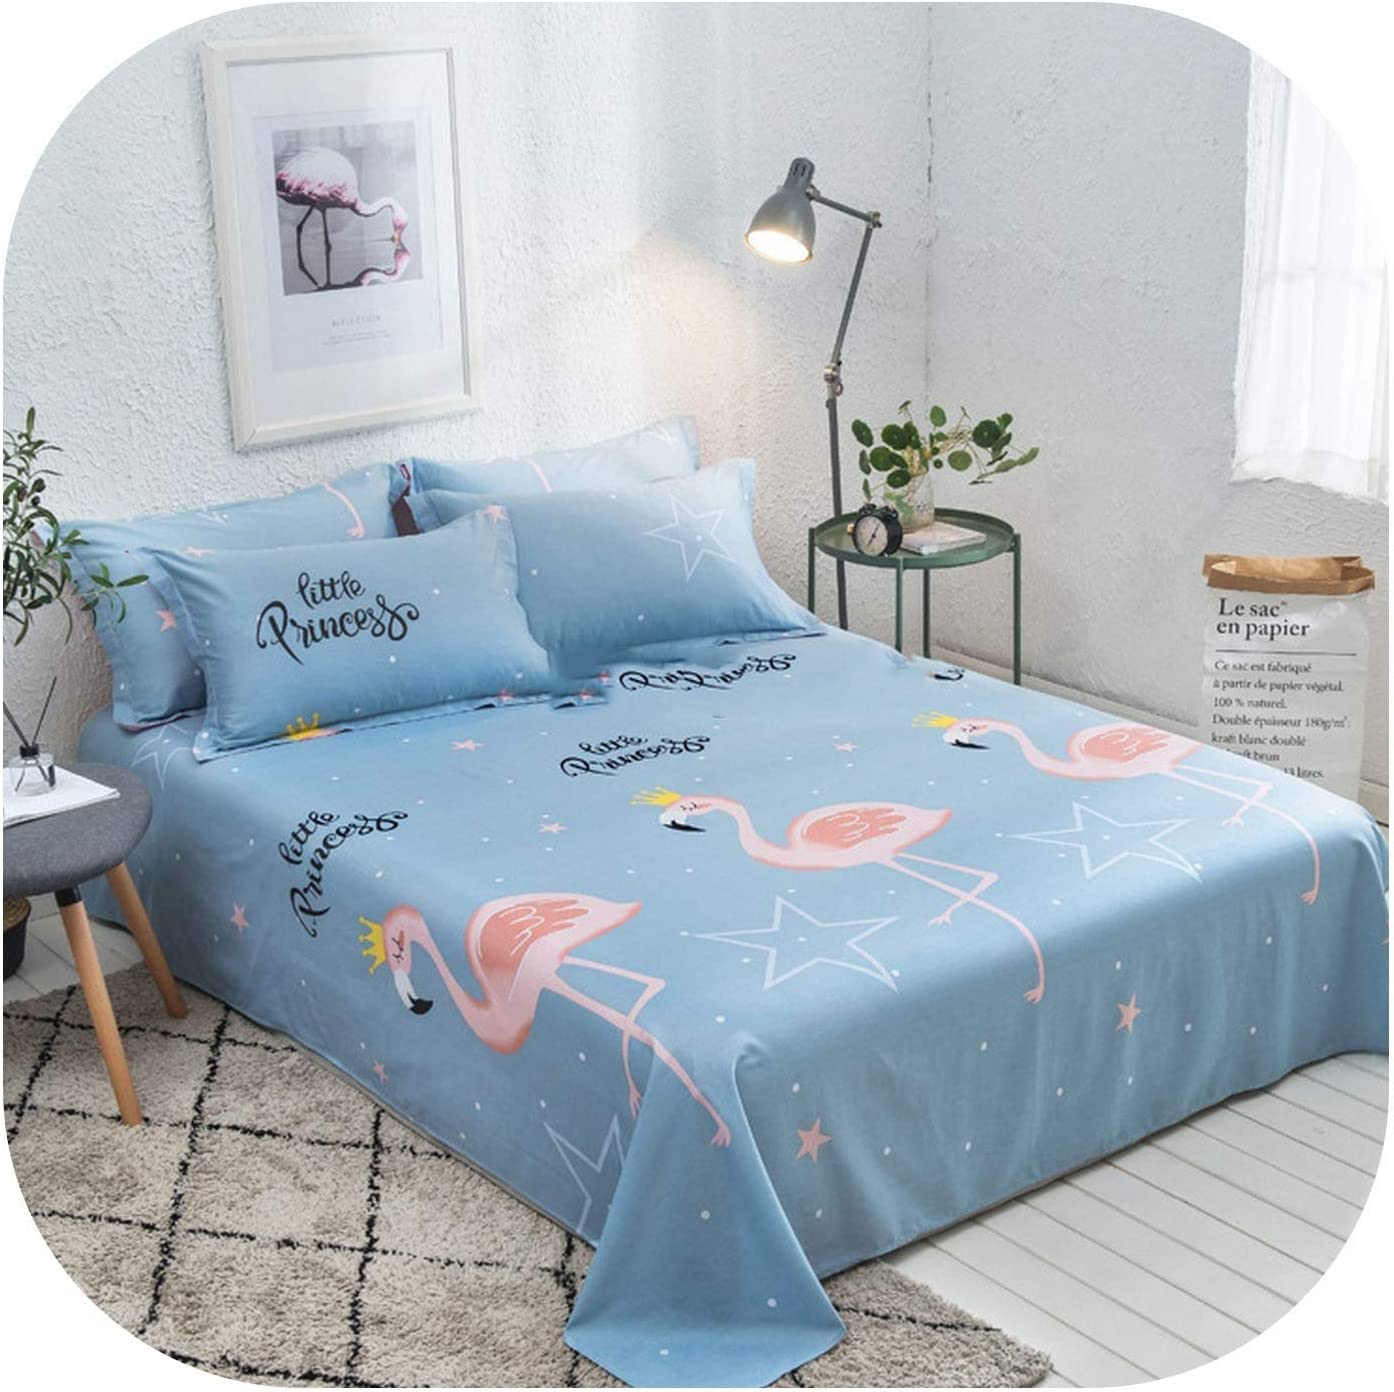 mamamoo Floral Birds Bed Sheet 100/% Cotton Mattress Protector Cover Flat Sheet 1 Piece Soft Bedspread Twin Full Queen Size,Army Green,2pcs Pillow Cases